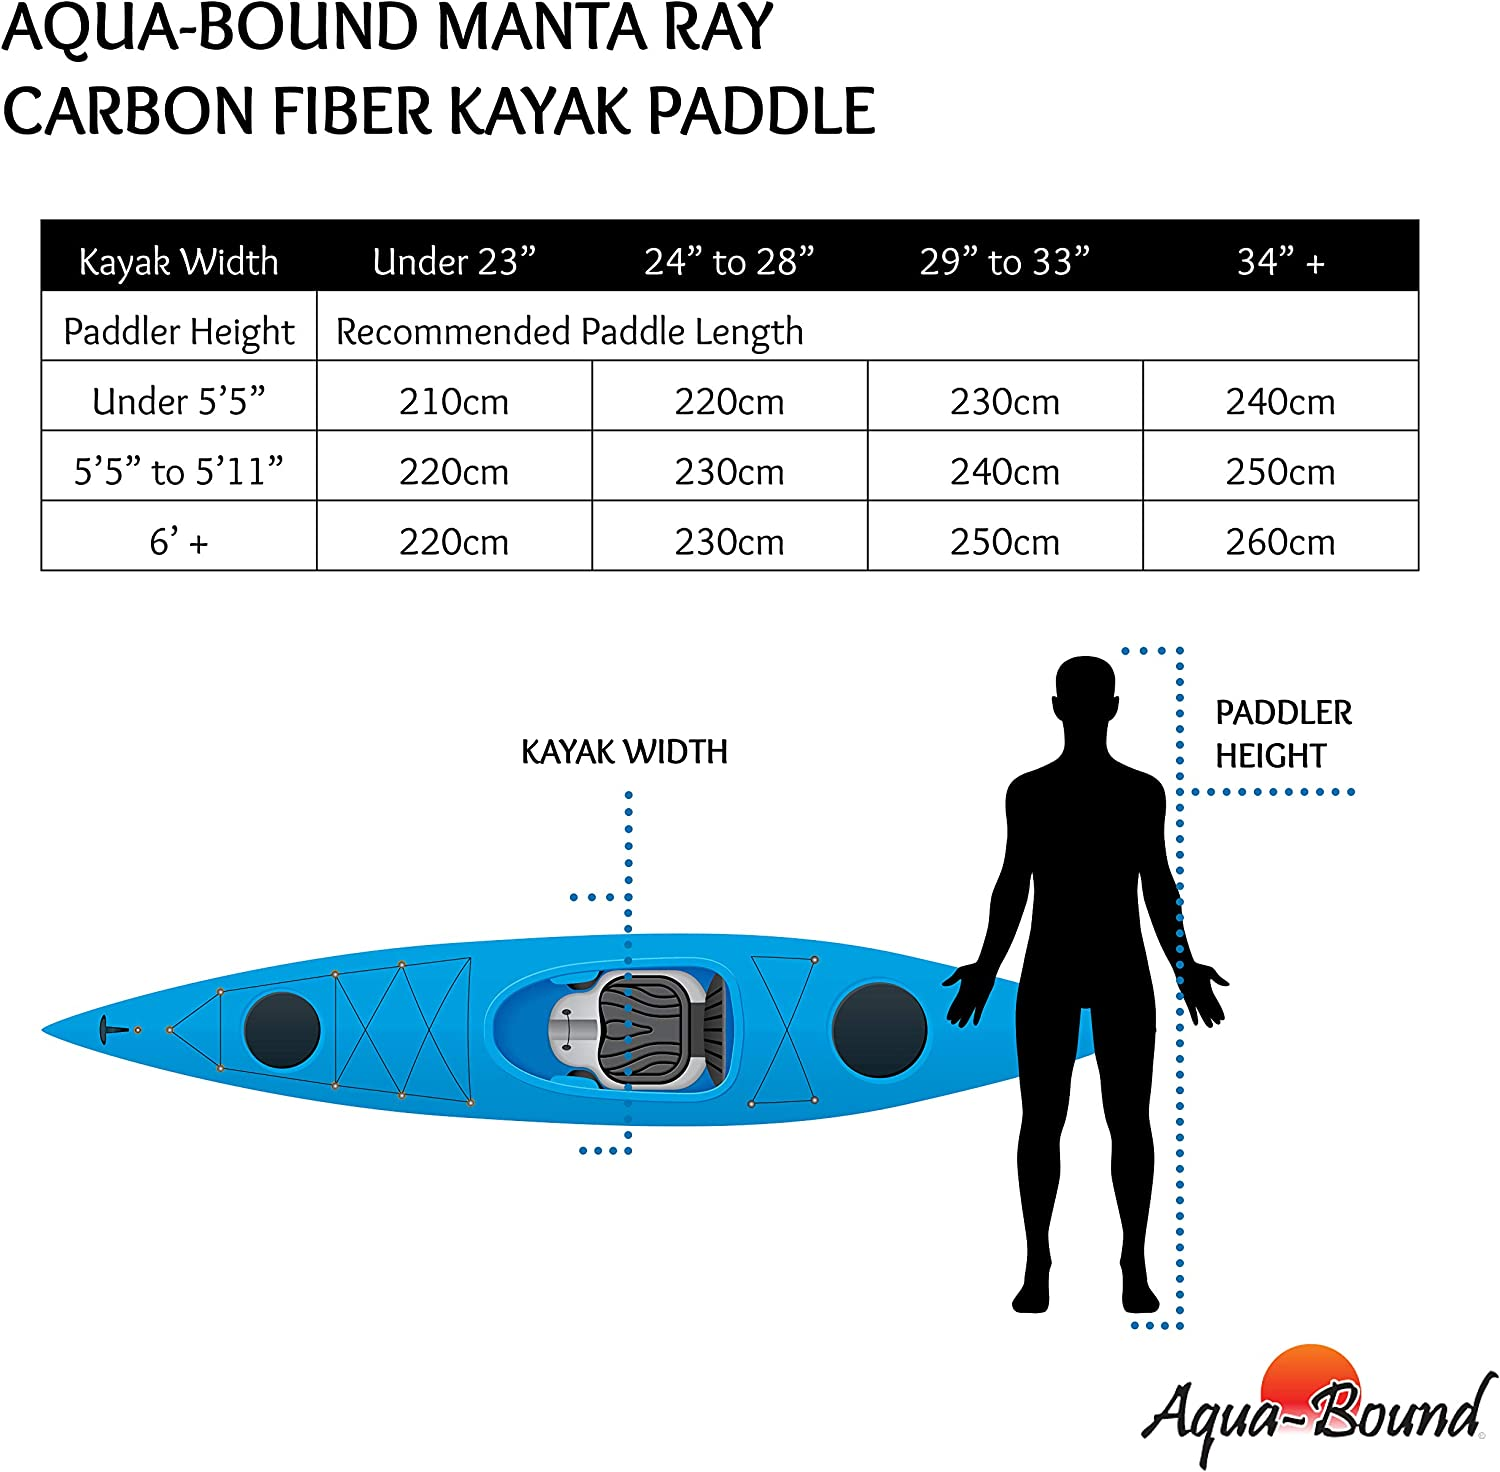 AQUA BOUND Manta Ray Carbon 2-Piece Kayak Paddle